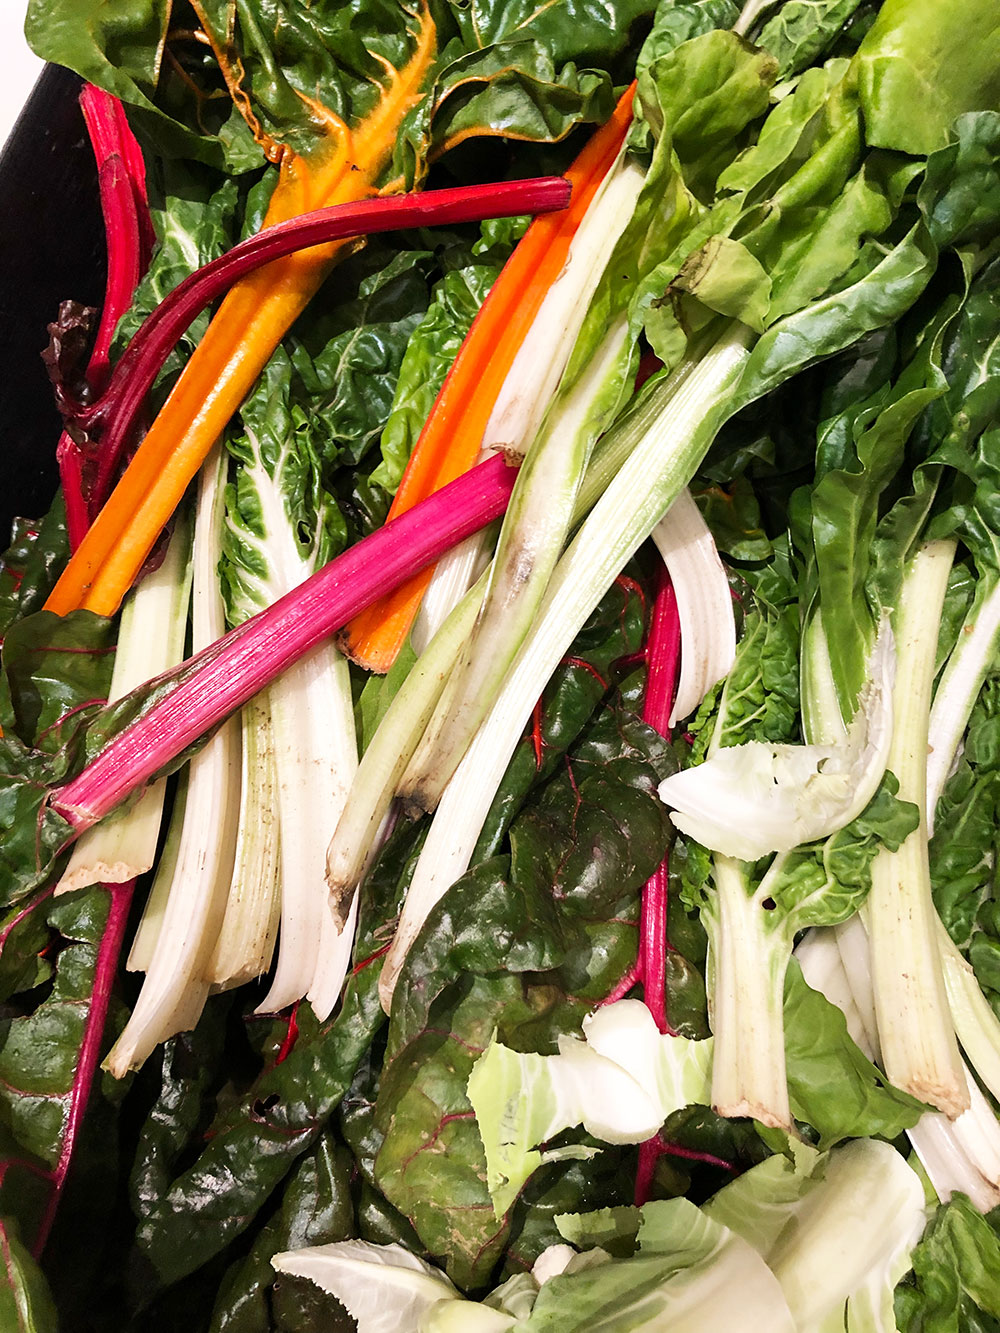 Chard for Sautéed chards with chilli and garlic